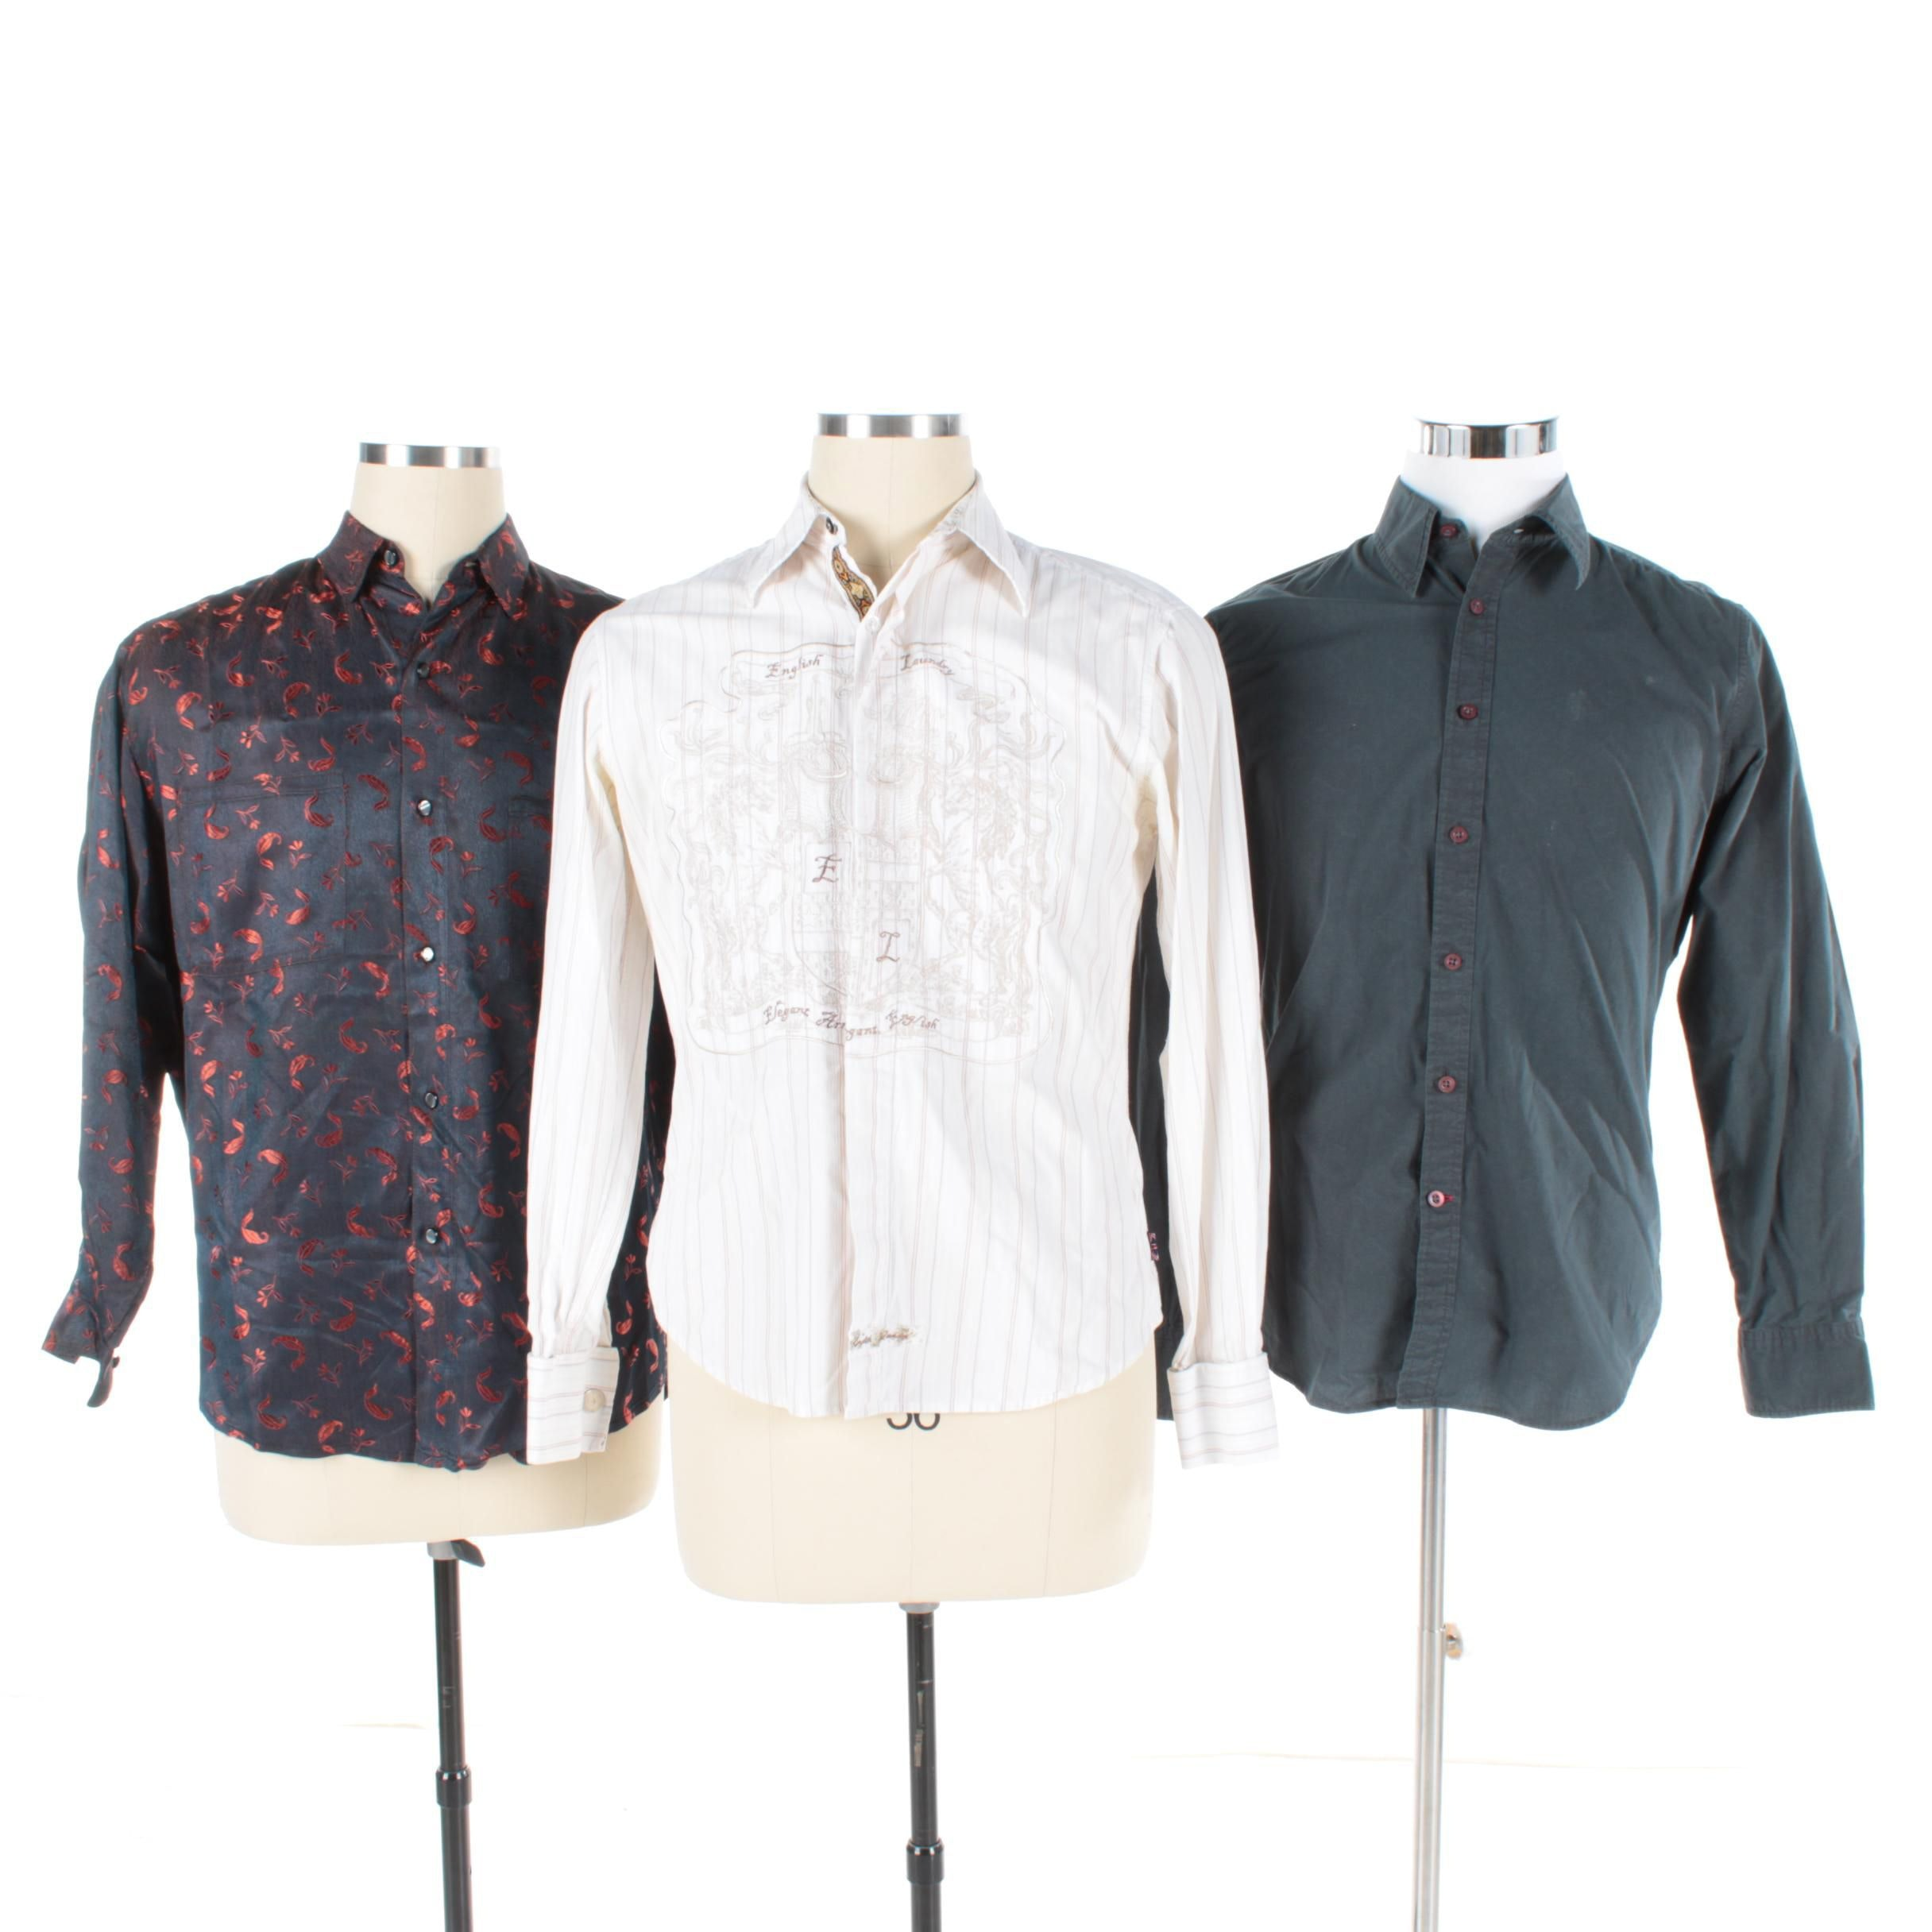 Men's Button-Front Shirts Including Guess by Marciano and English Laundry